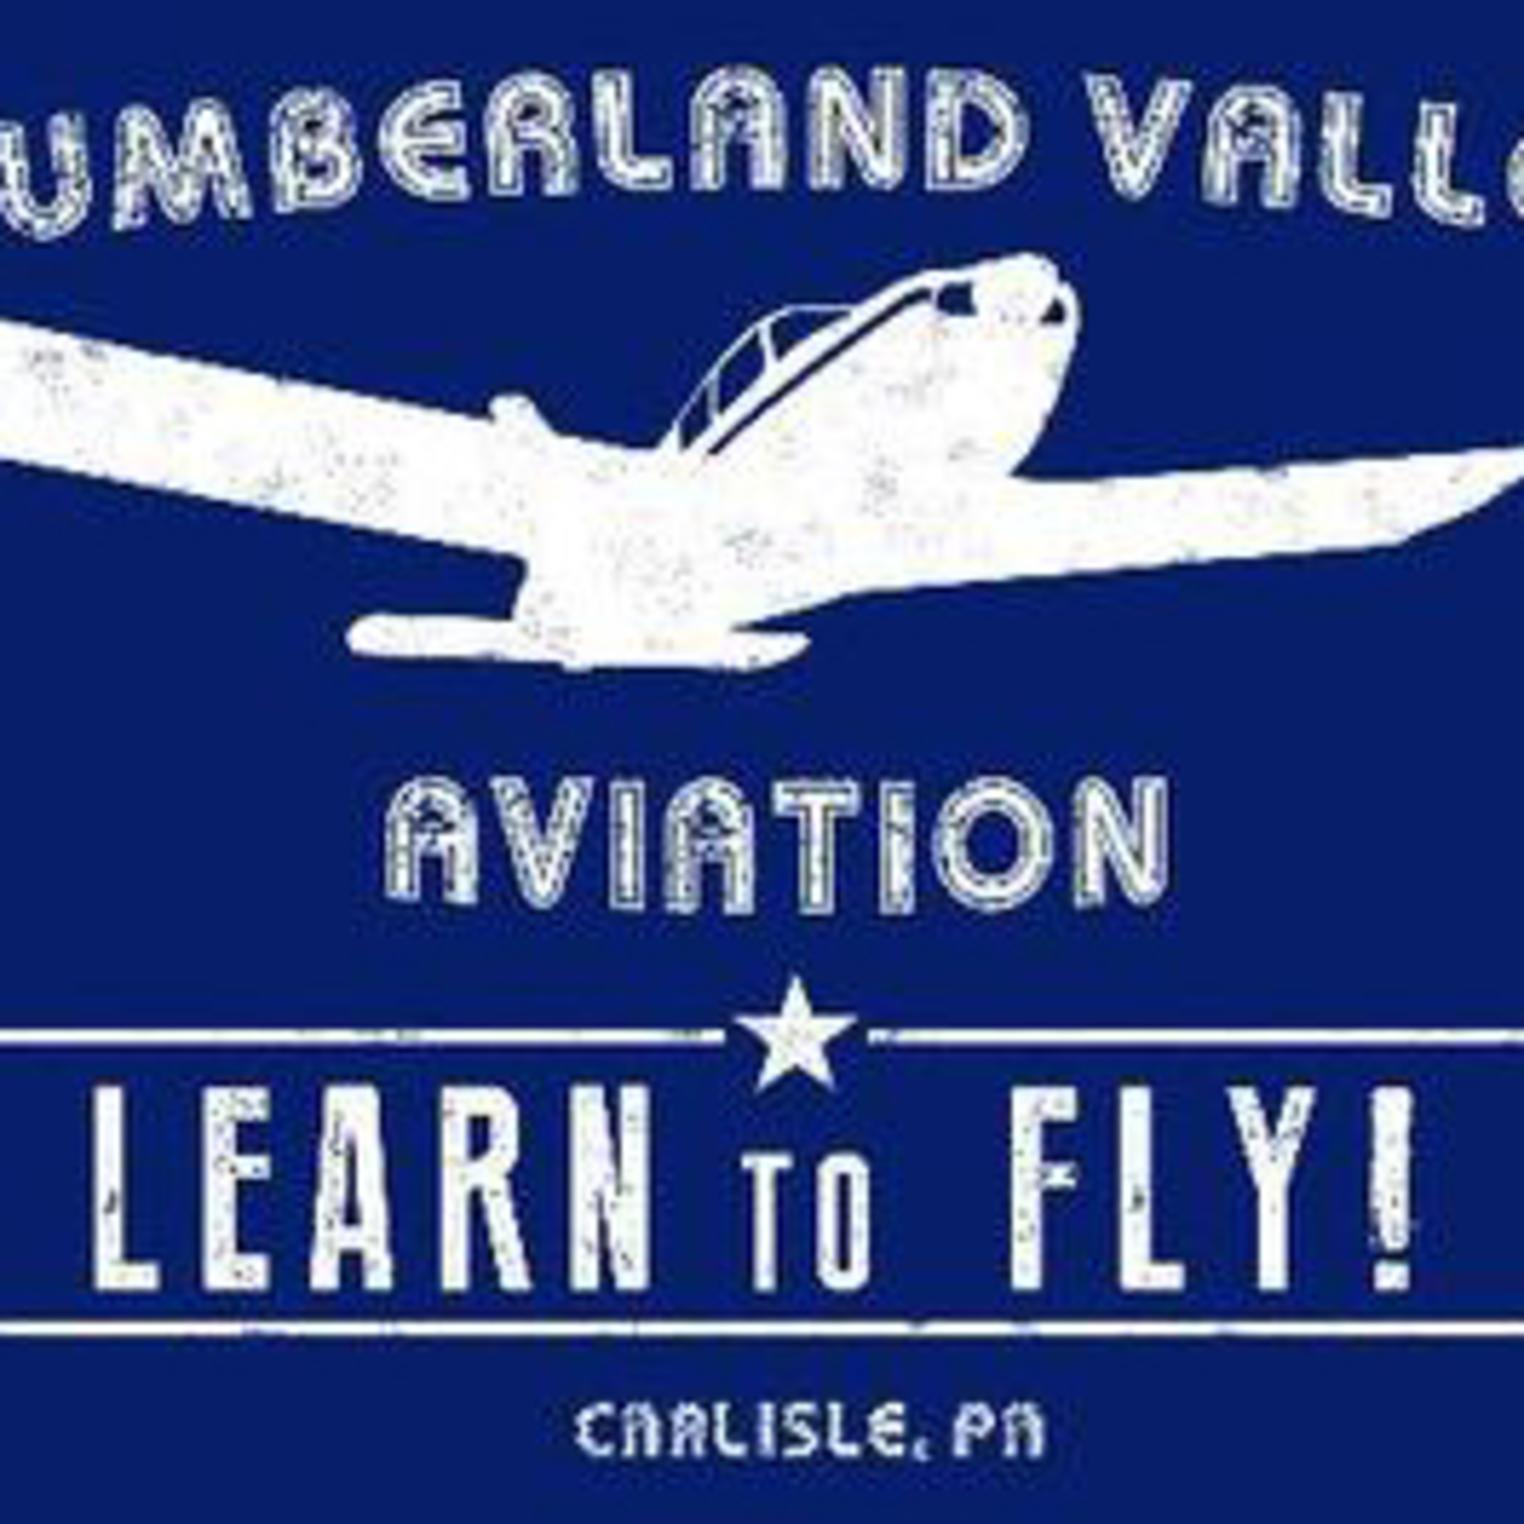 Cumberland Valley Aviation